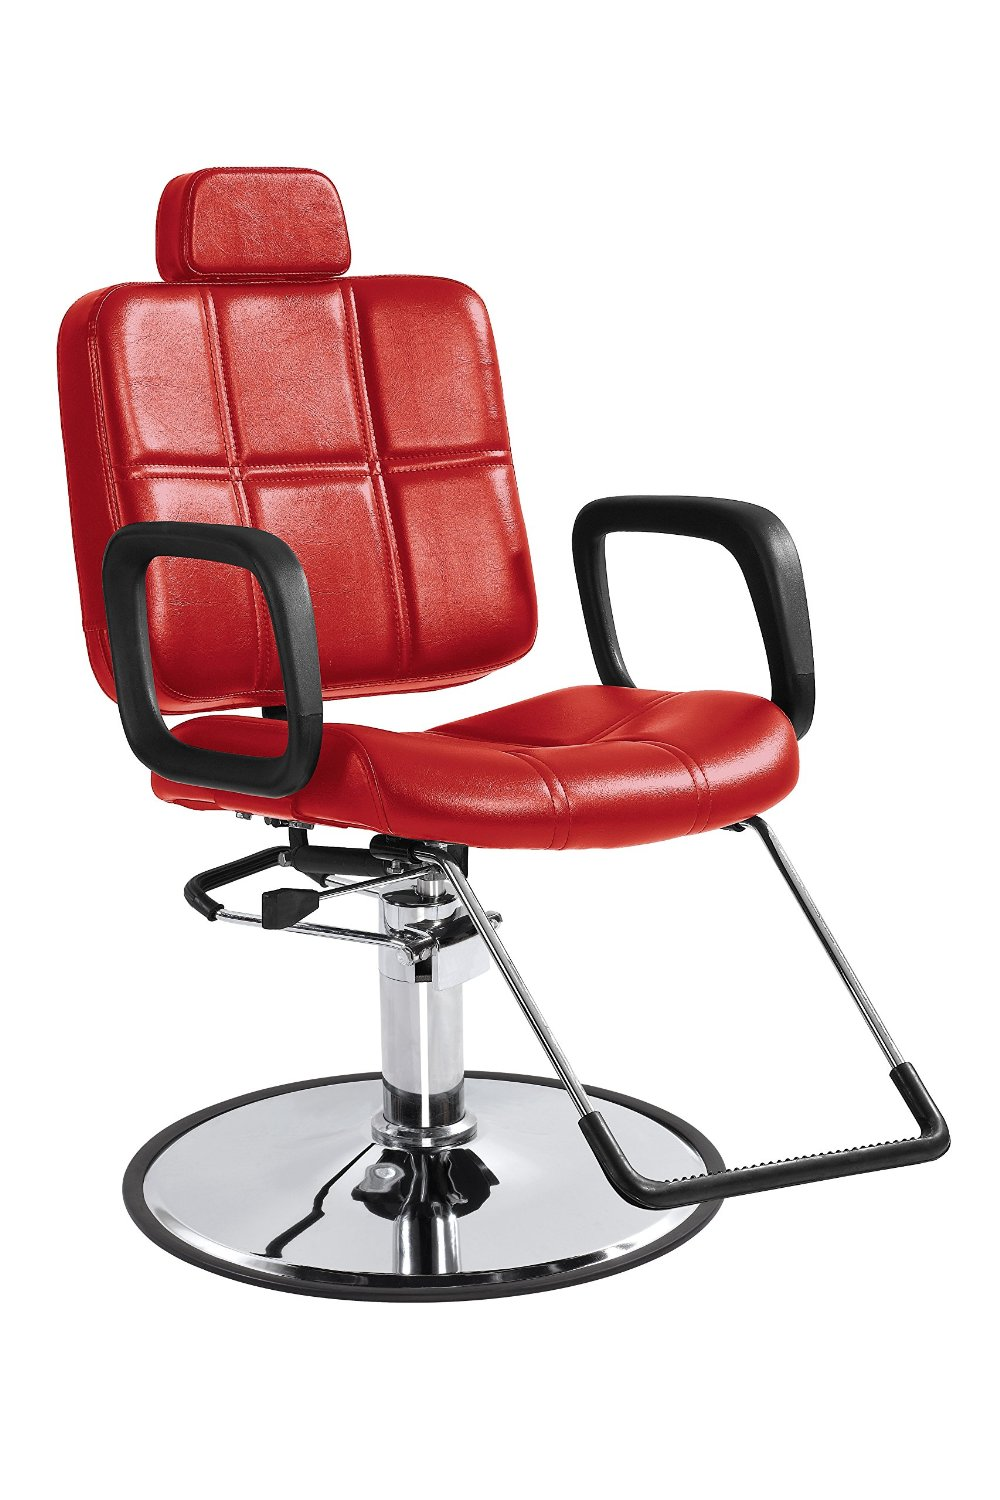 portable hair styling chair portable shampoo bowl and chair a guide best one in 9251